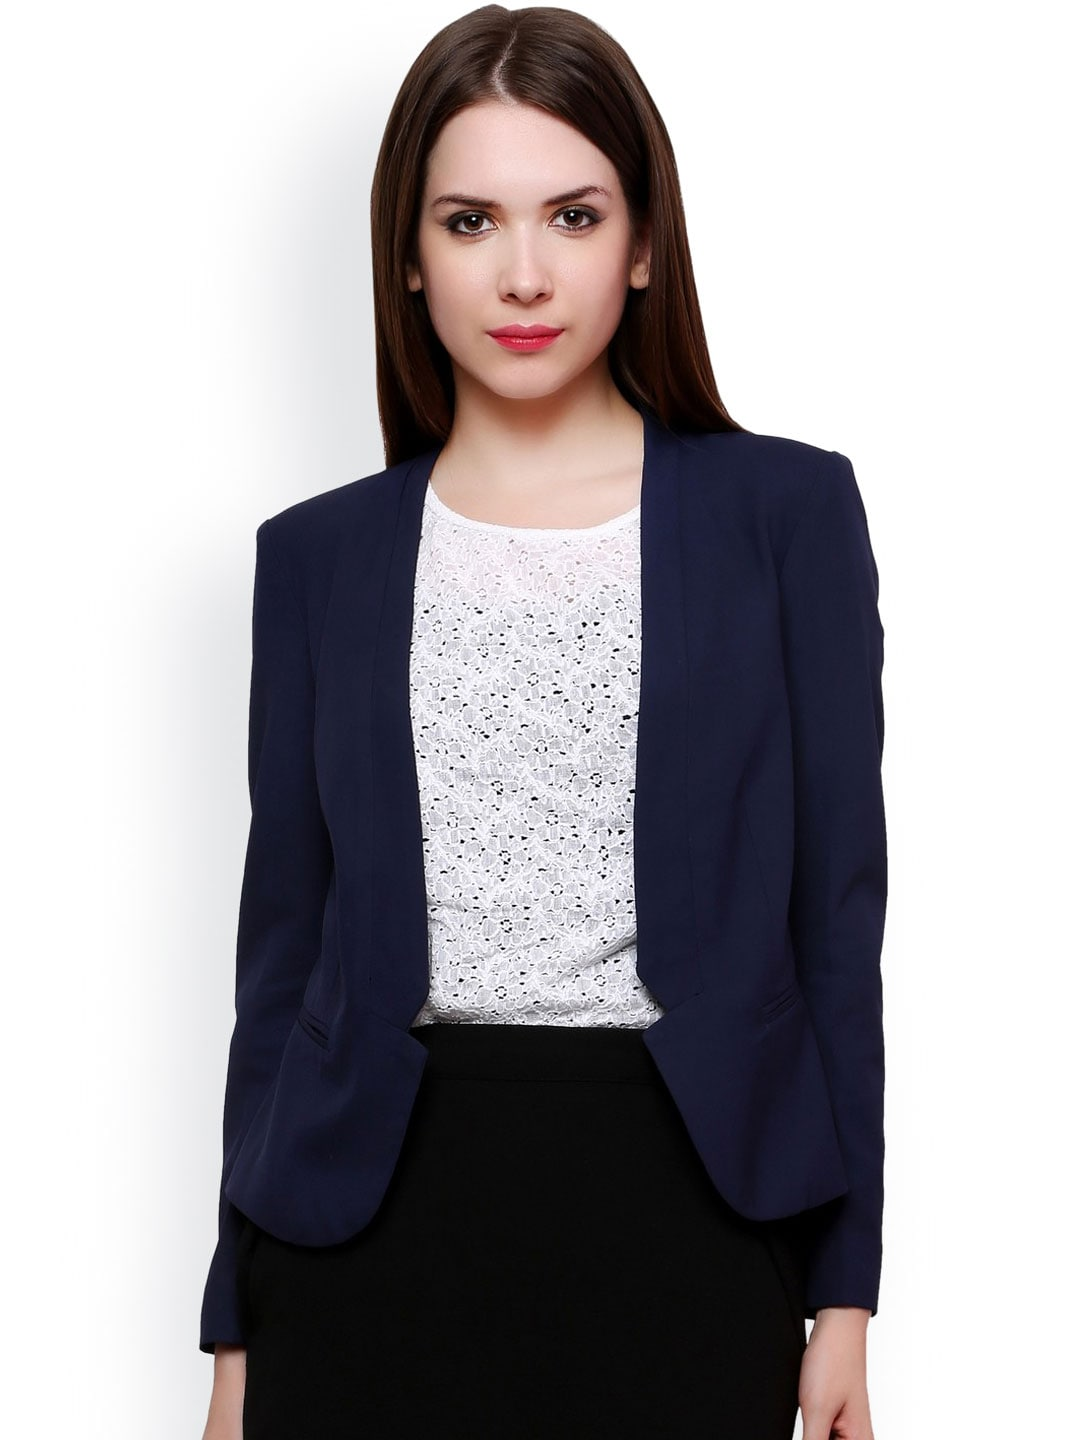 Women Blazers Online - Buy Blazers for Women in India 389cd15fec